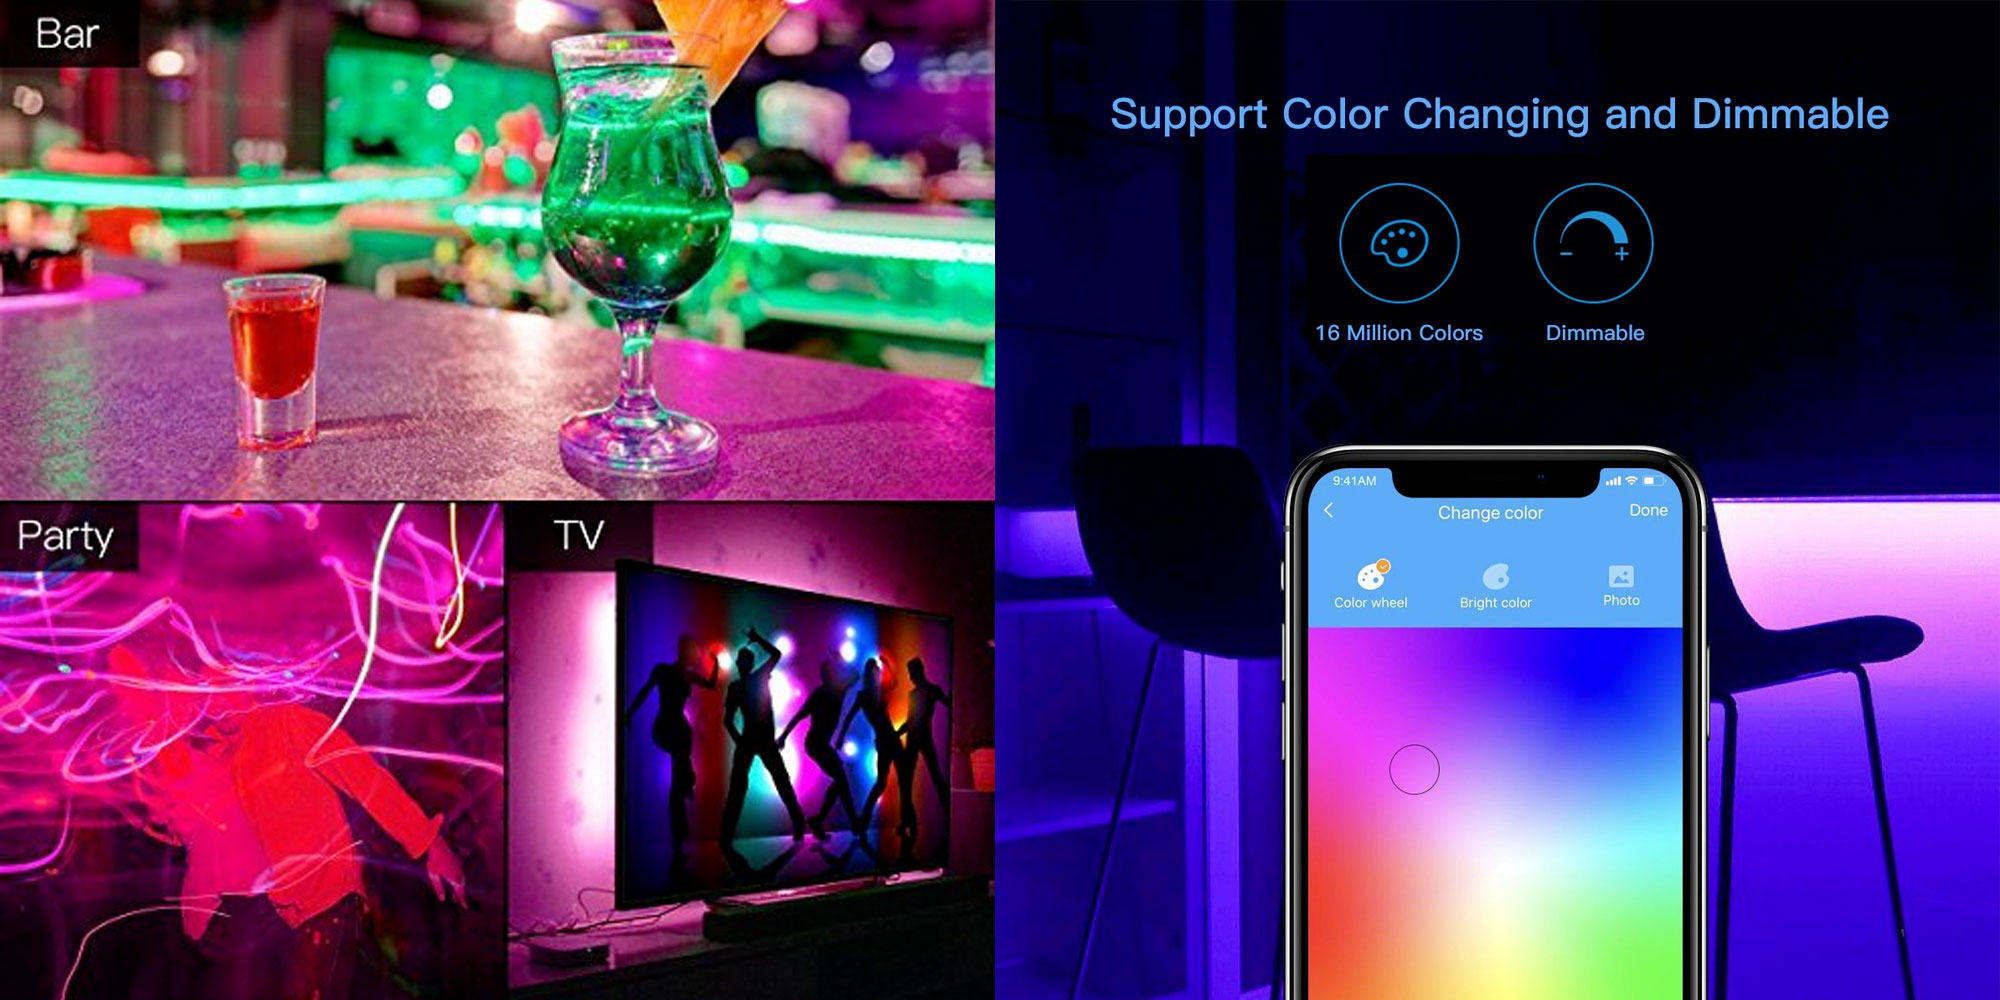 This Homekit Enabled Koogeek Rgb Led Strip Is A Must For Any Home Theater At 29 Reg 42